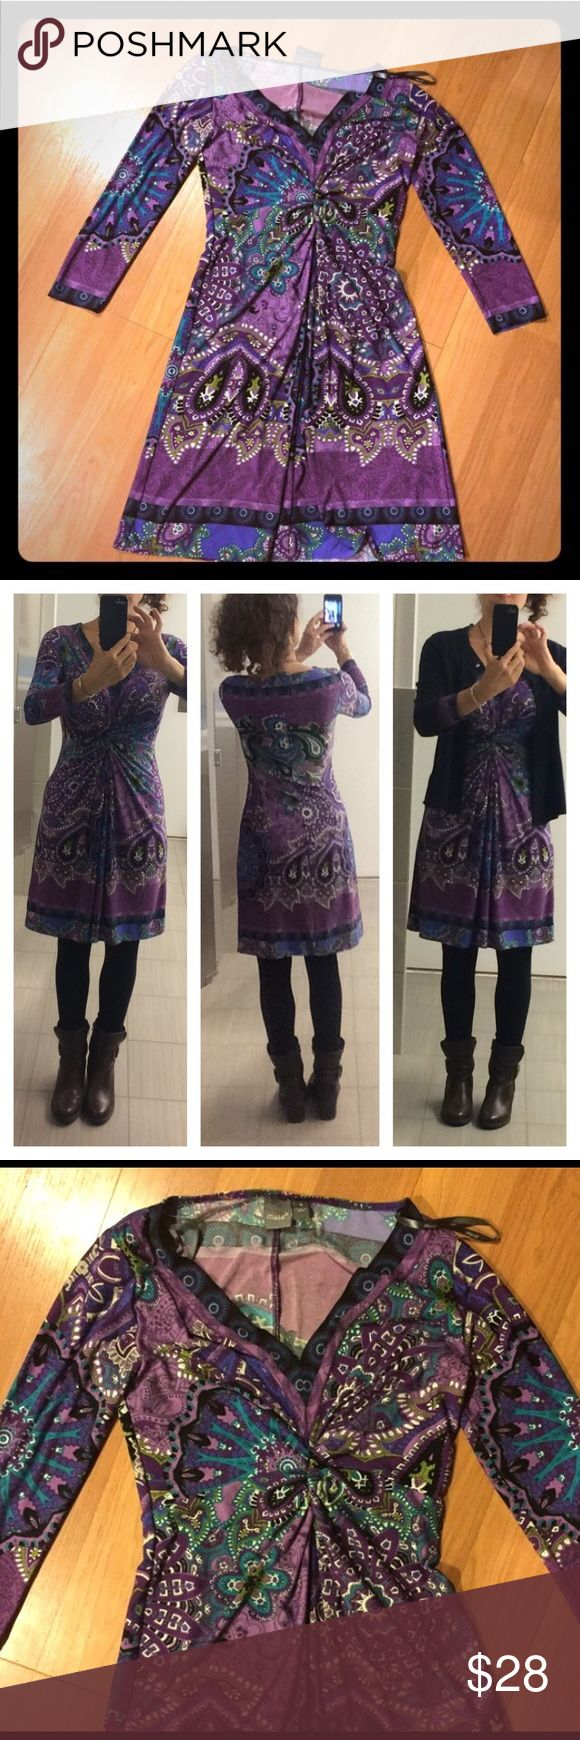 """MUSE Tunic Dress - EUC size 4 This is a beautiful excellent condition vibrant dress by Muse. 100% polyester, cool material but long sleeve so great for summer evening.  I'm 5""""3 and hits right at my knee; bust fits my 34C/D size w room. The first pic is original posher. Rest are mine. Muse Dresses Midi"""